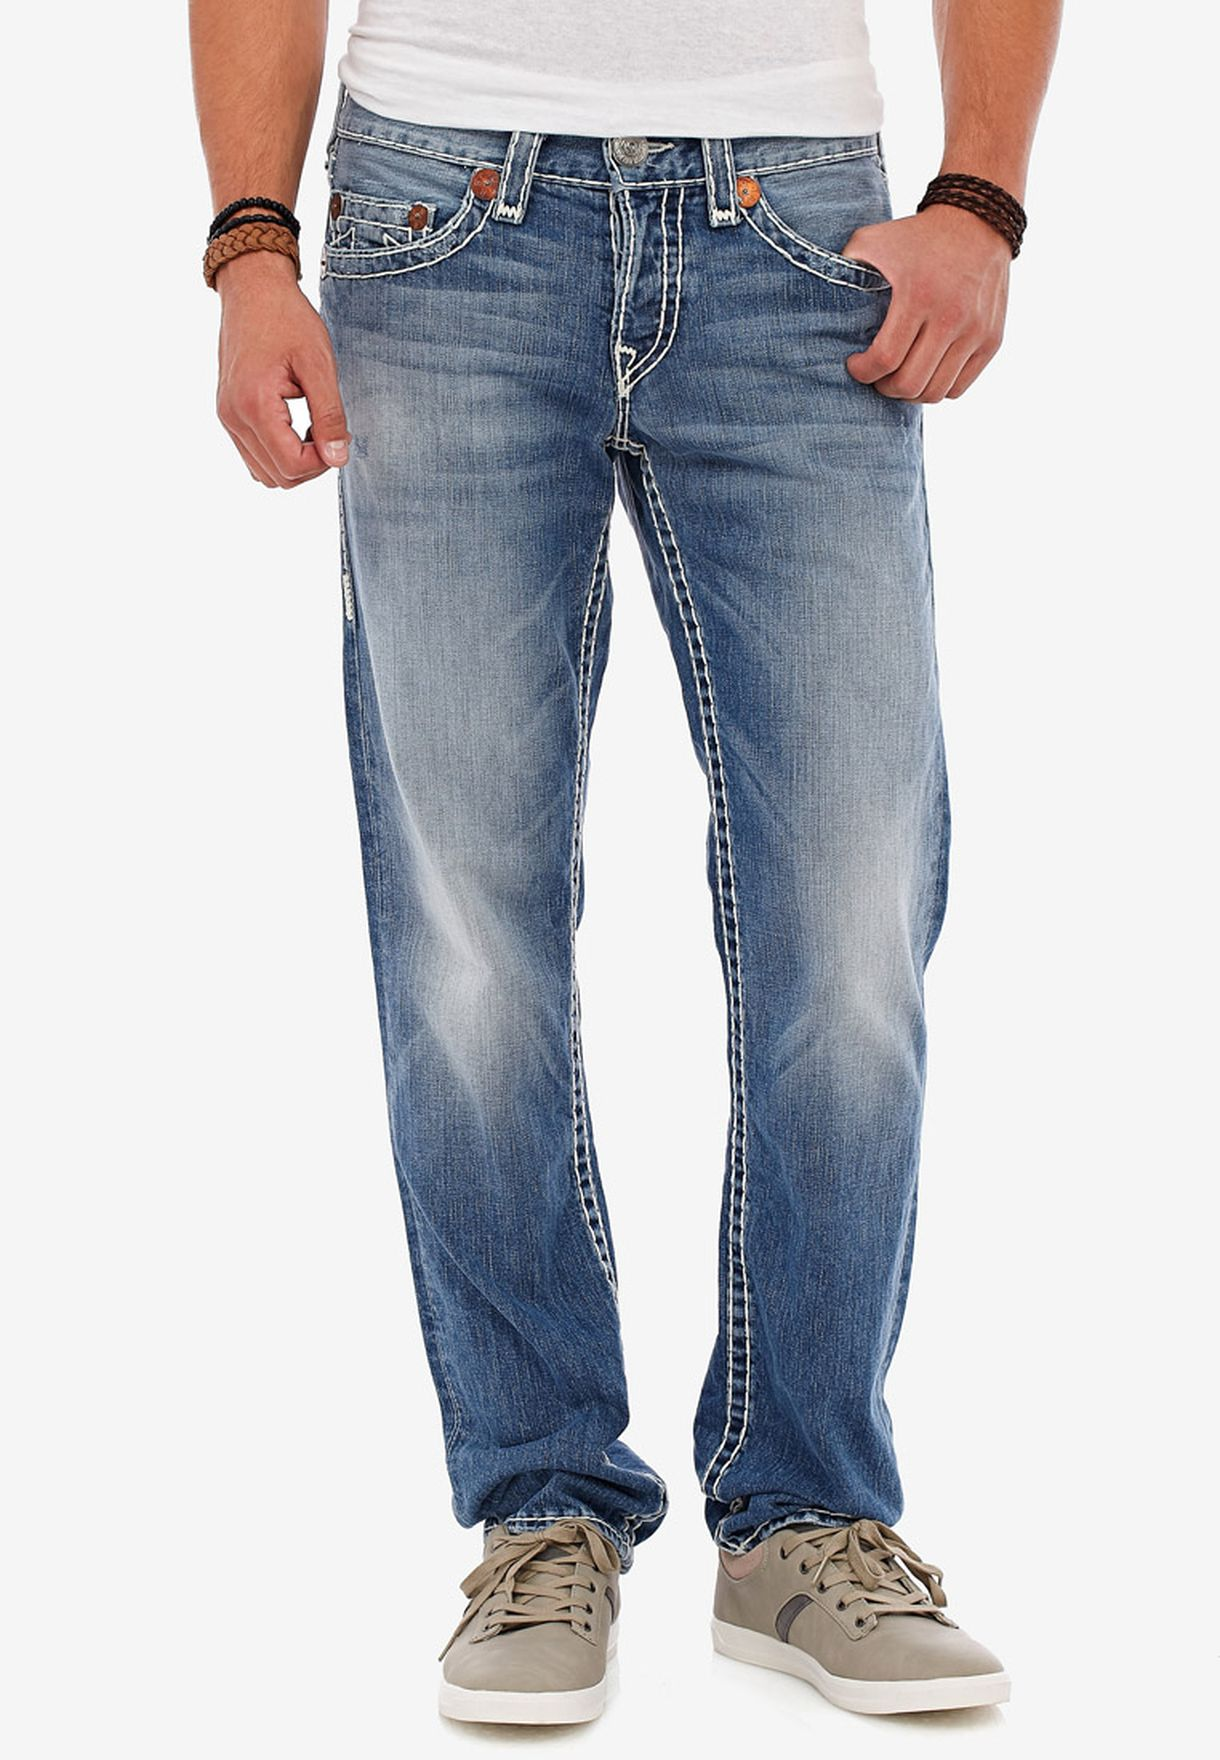 37cee2878 Shop True religion blue Geno Slim Jeans for Men in Kuwait - TR459AT18XOR